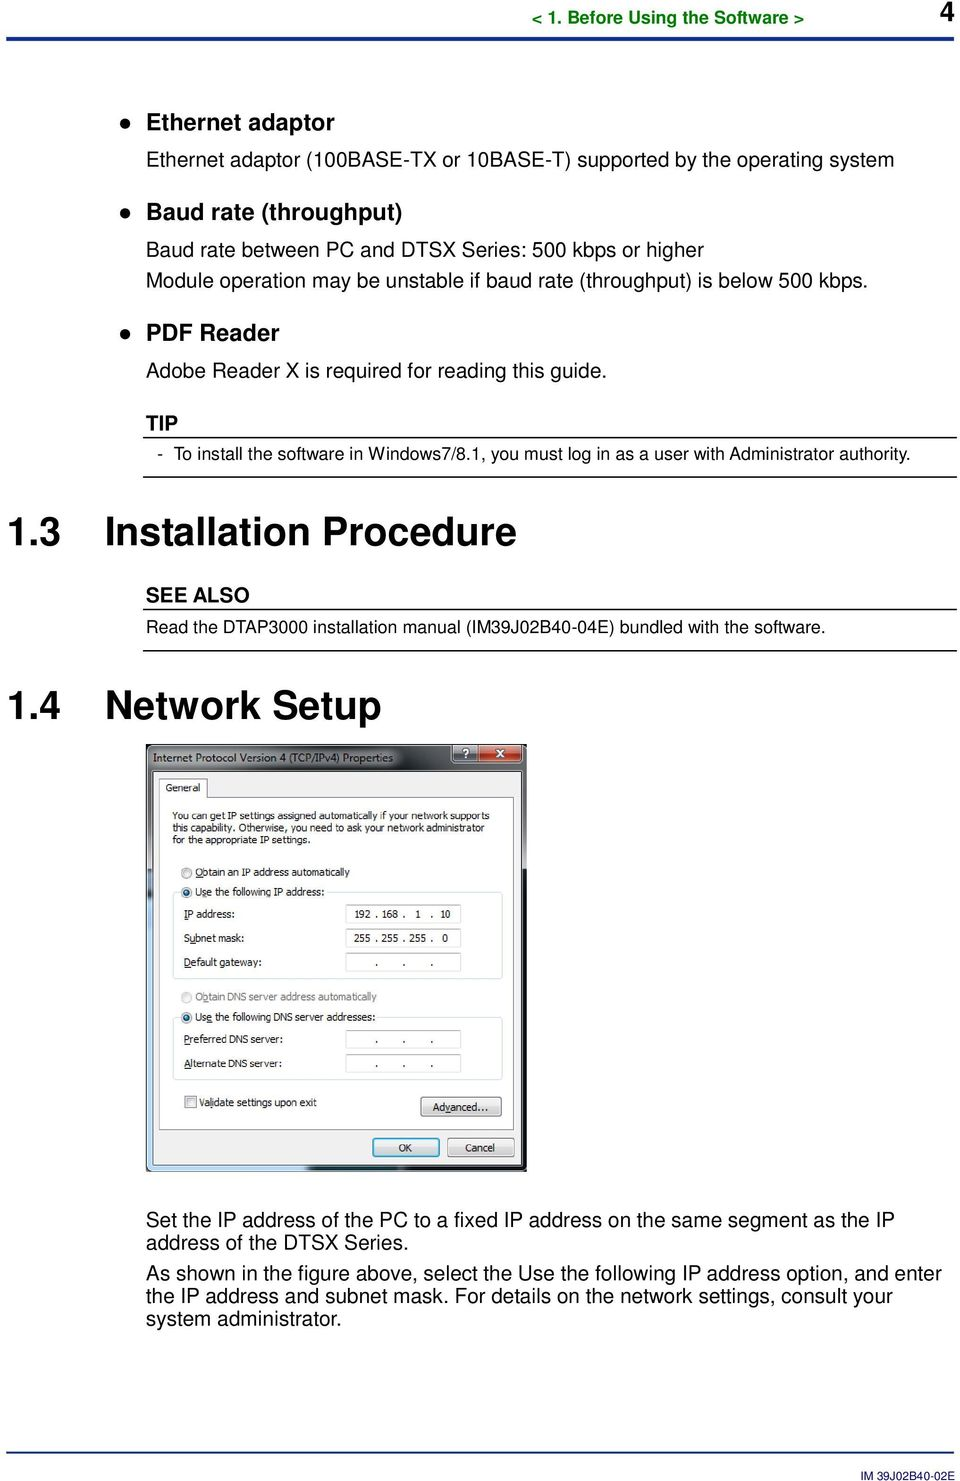 1, you must log in as a user with Administrator authority. 1.3 Installation Procedure SEE ALSO Read the DTAP3000 installation manual (IM39J02B40-04E) bundled with the software. 1.4 Network Setup Set the IP address of the PC to a fixed IP address on the same segment as the IP address of the DTSX Series.